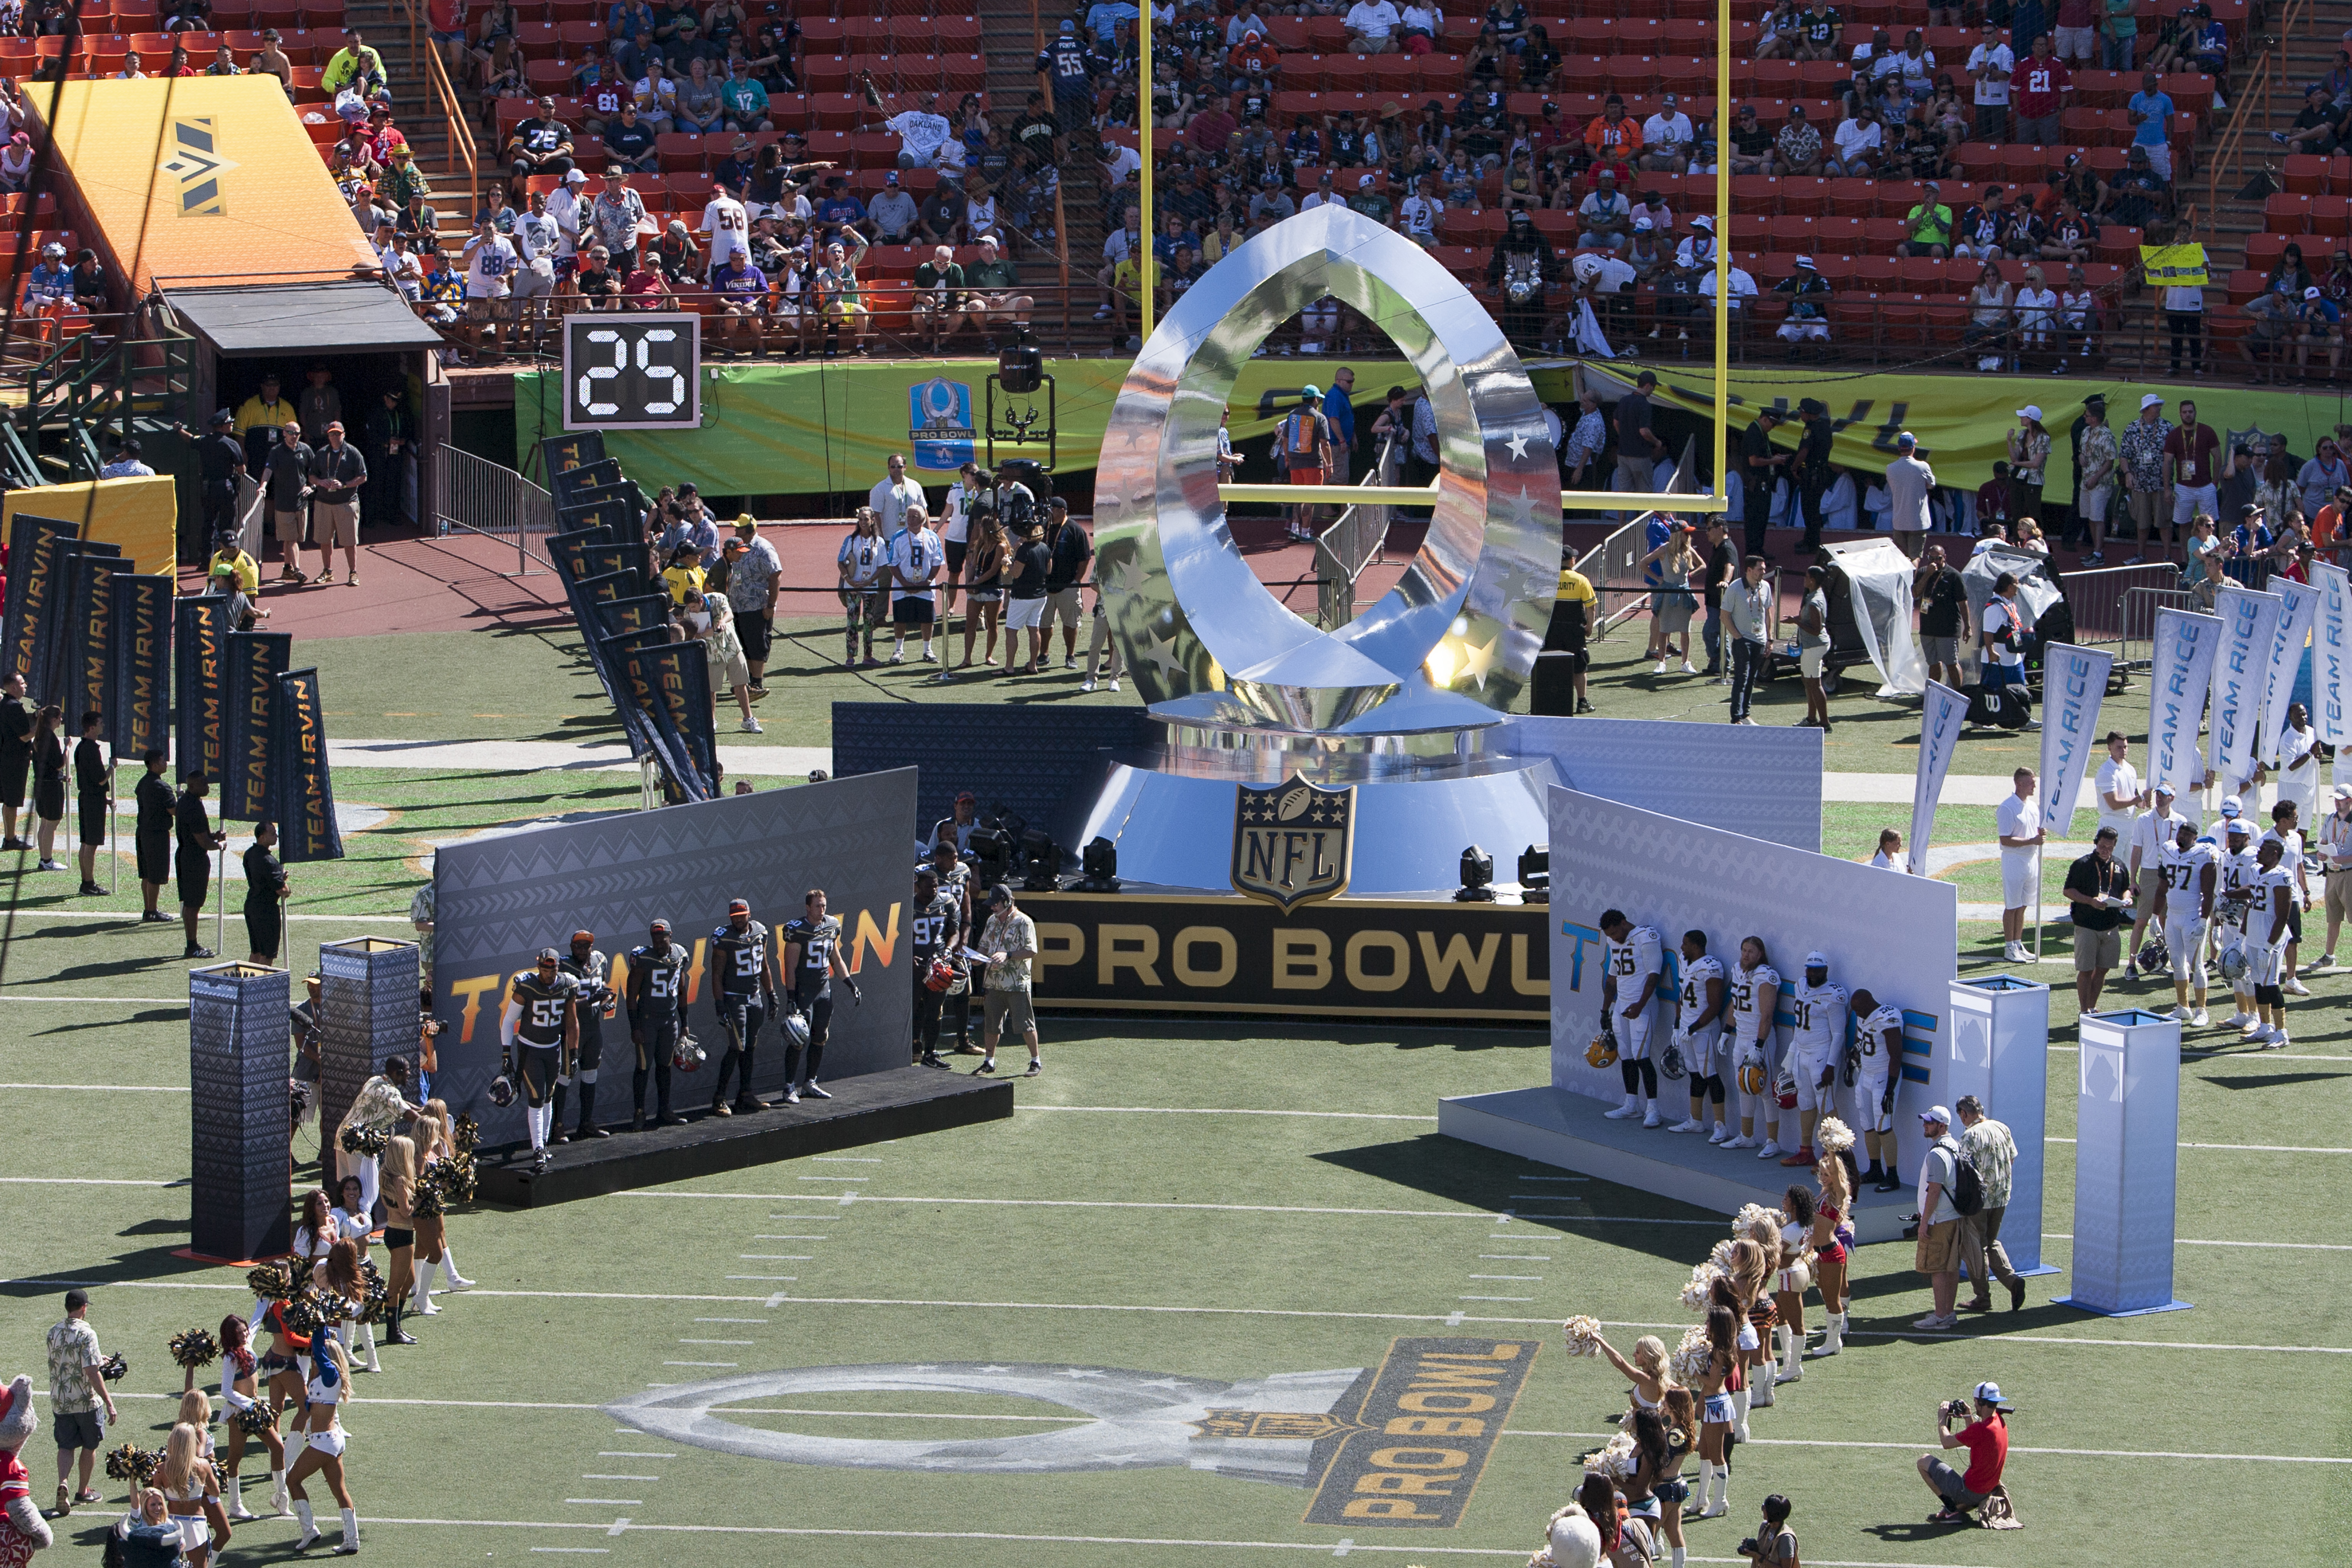 The all-star football players are introduced before the start of the NFL Pro Bowl football game, Sunday, Jan. 31, 2016, in Honolulu. (AP Photo/Eugene Tanner)